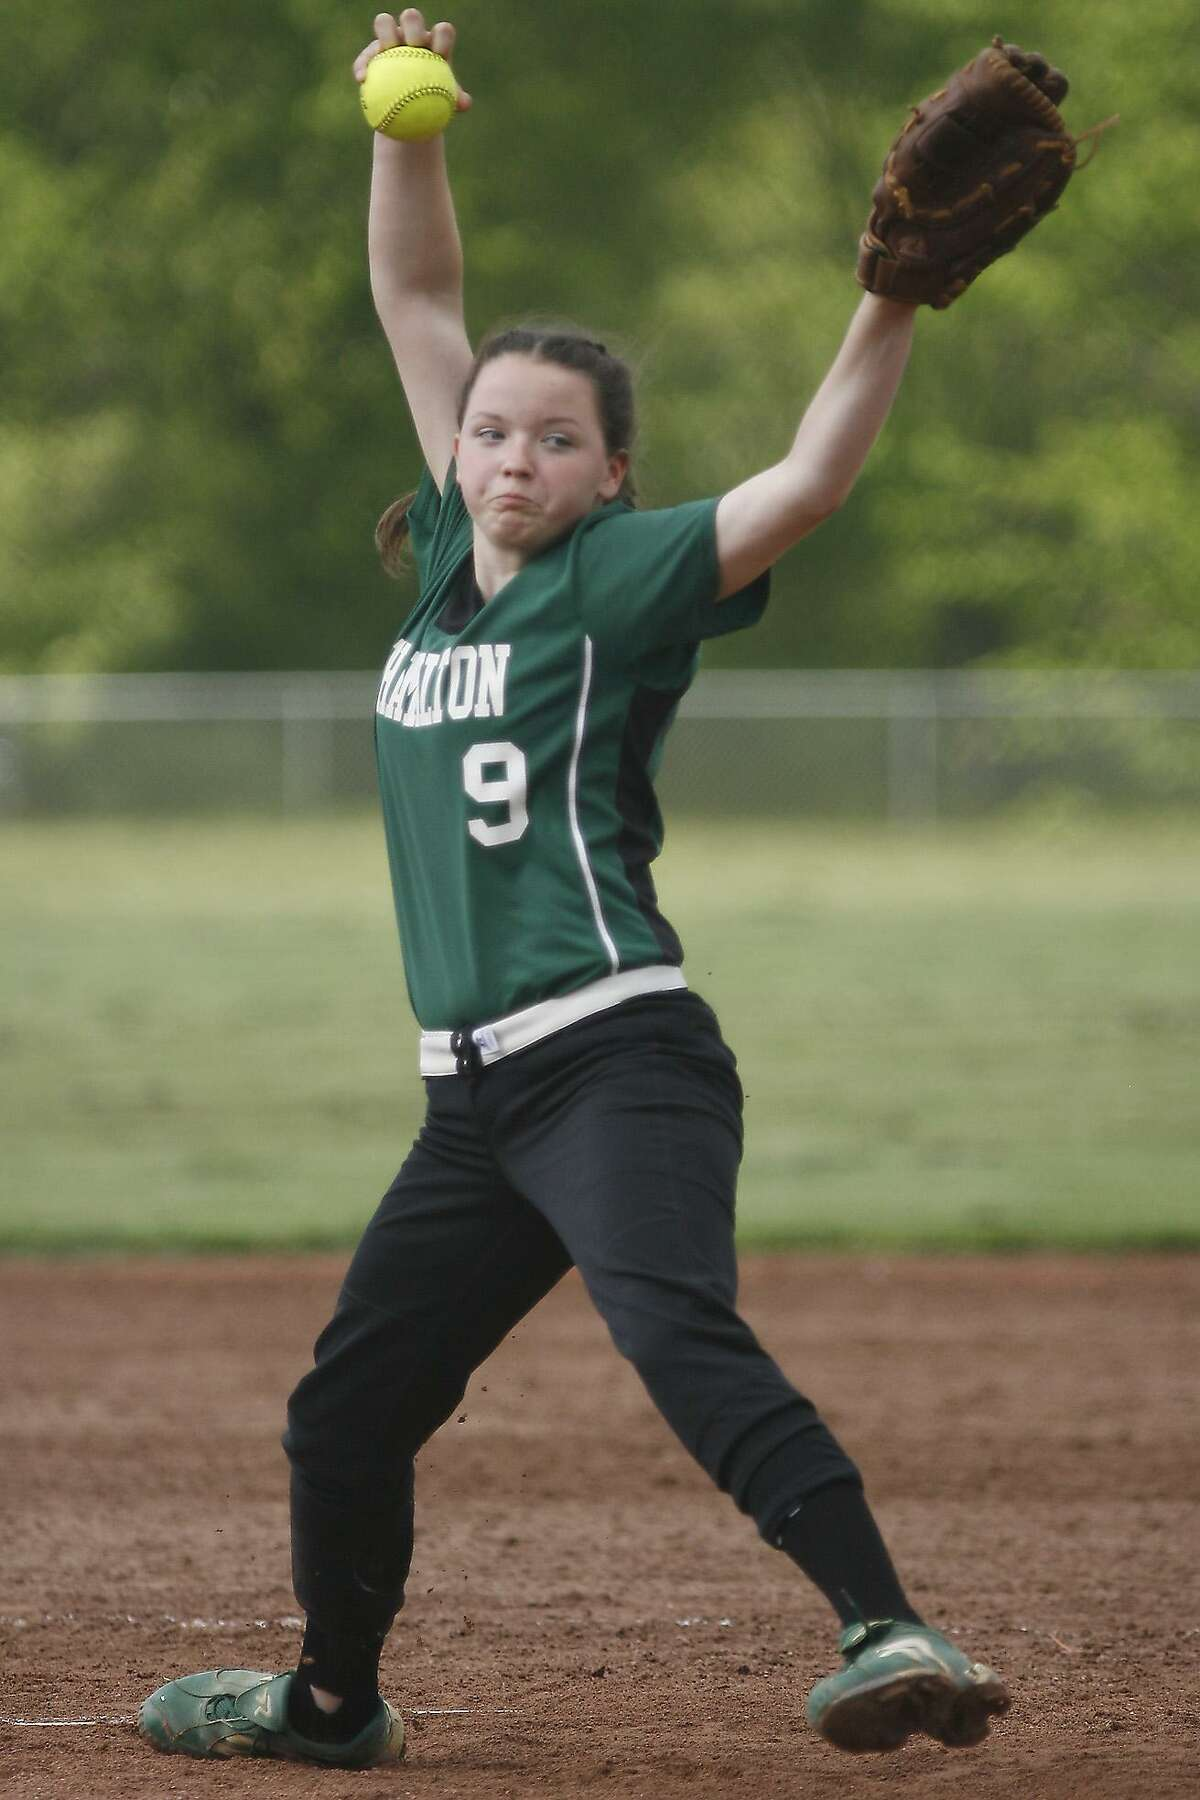 Dispatch File Photo by JOHN HAEGER Hamilton eighth grader Becca Rogers delivers a pitch to an Oriskany batter in a league game May 24, 2011. Rogers was named All-State First Team.